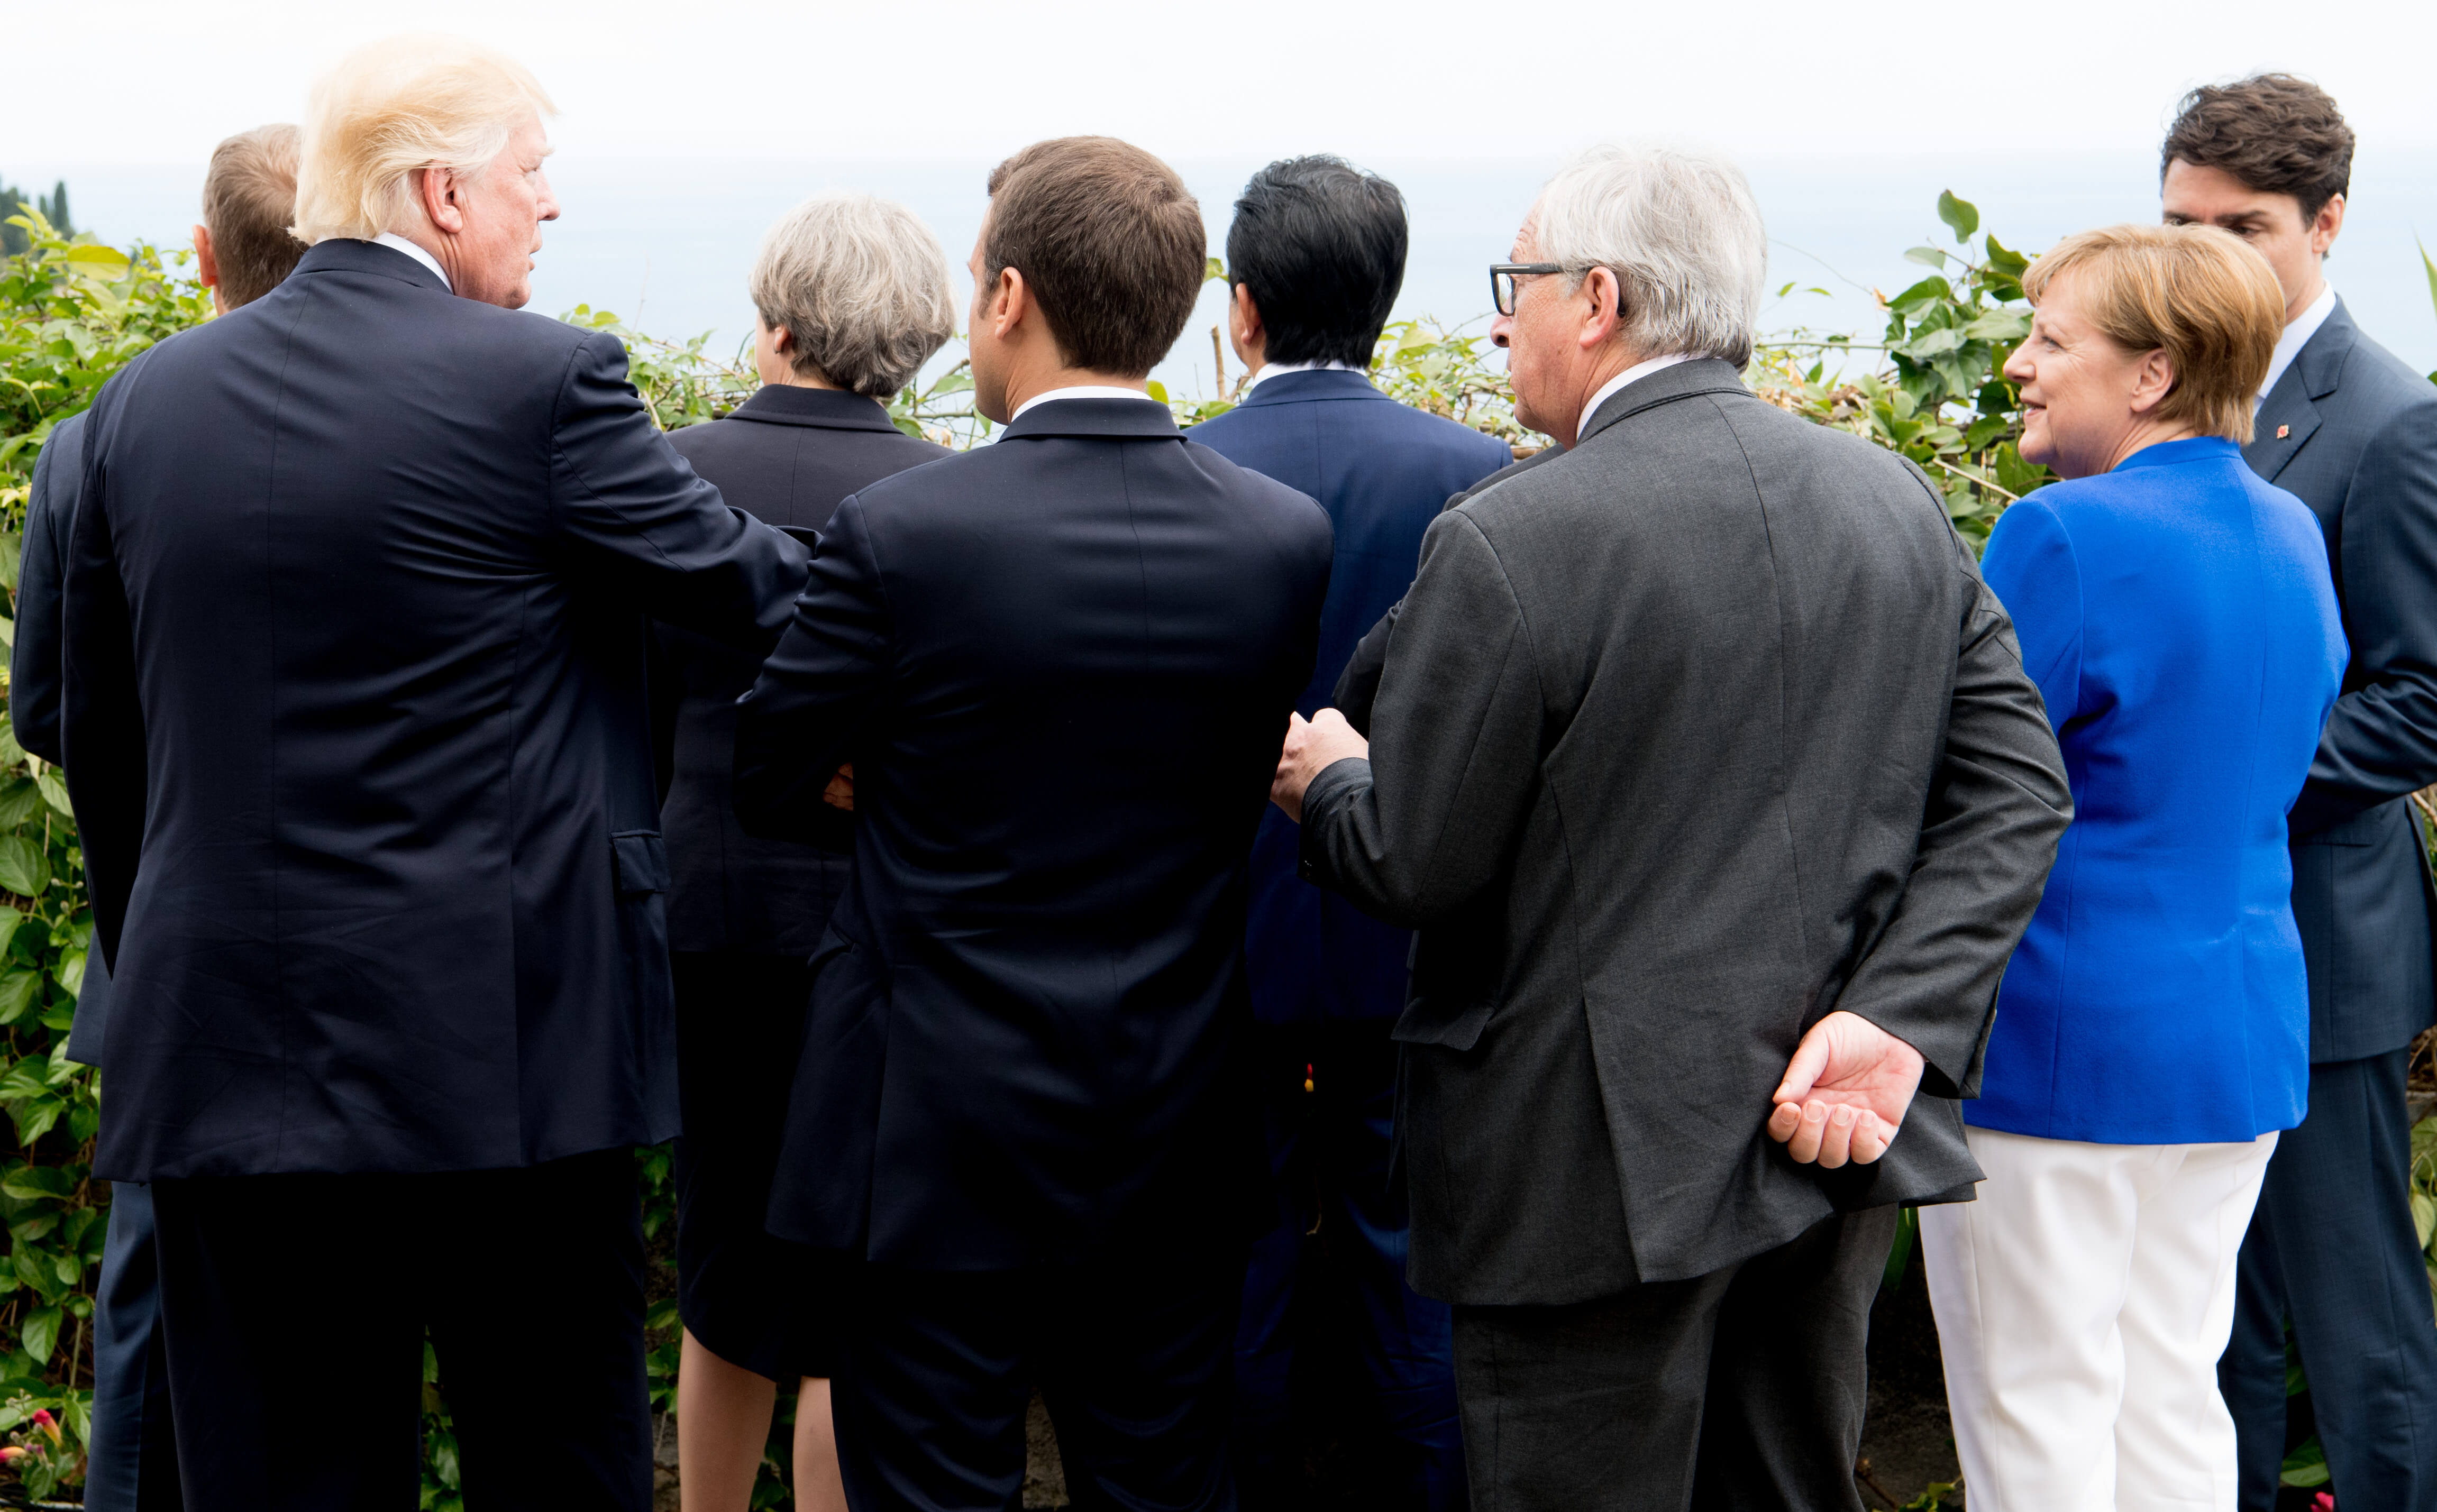 Donald Tusk, Donald Trump, Theresa May, Emmanuel Macron, Shinzo Abe, Jean-Claude Juncker, Angela Merkel and Justin Trudeau during the G7 summit in Italy 2017.